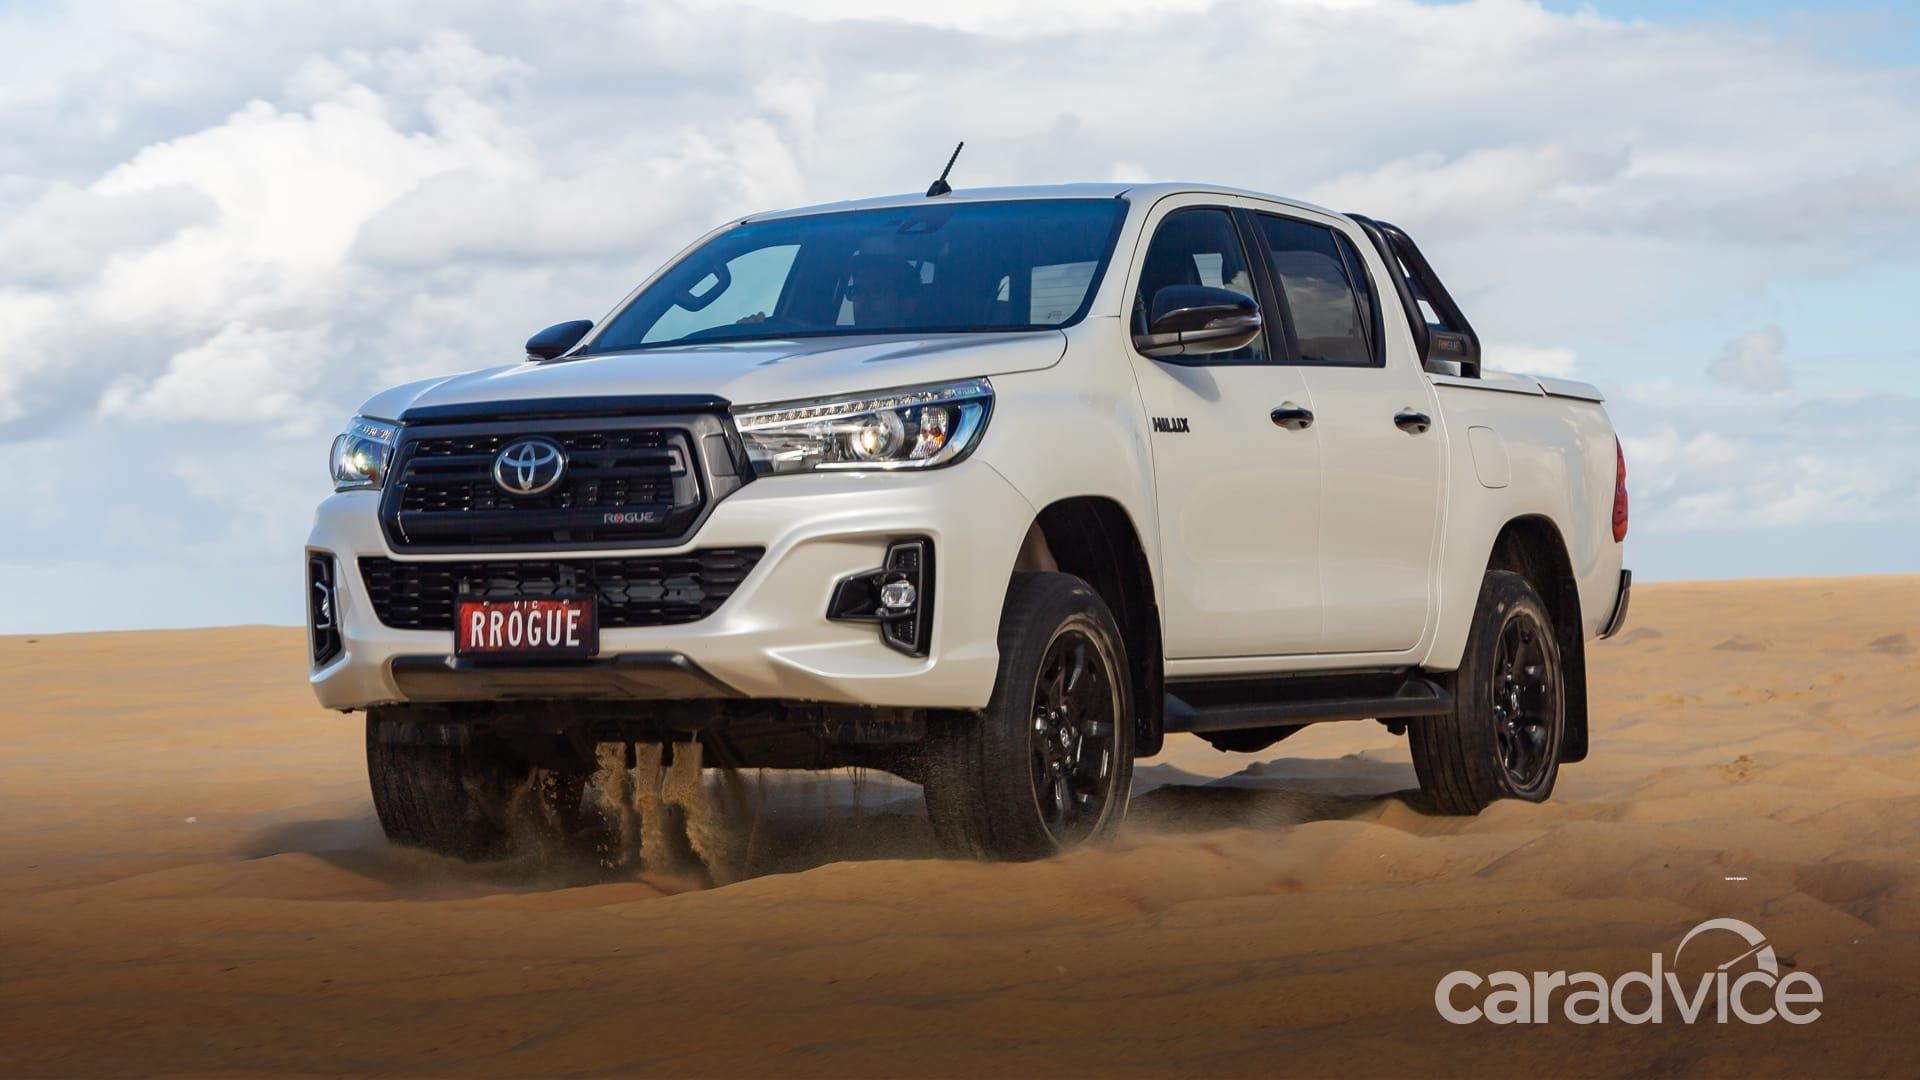 2021 toyota hilux prices confirmed rugged x and rogue